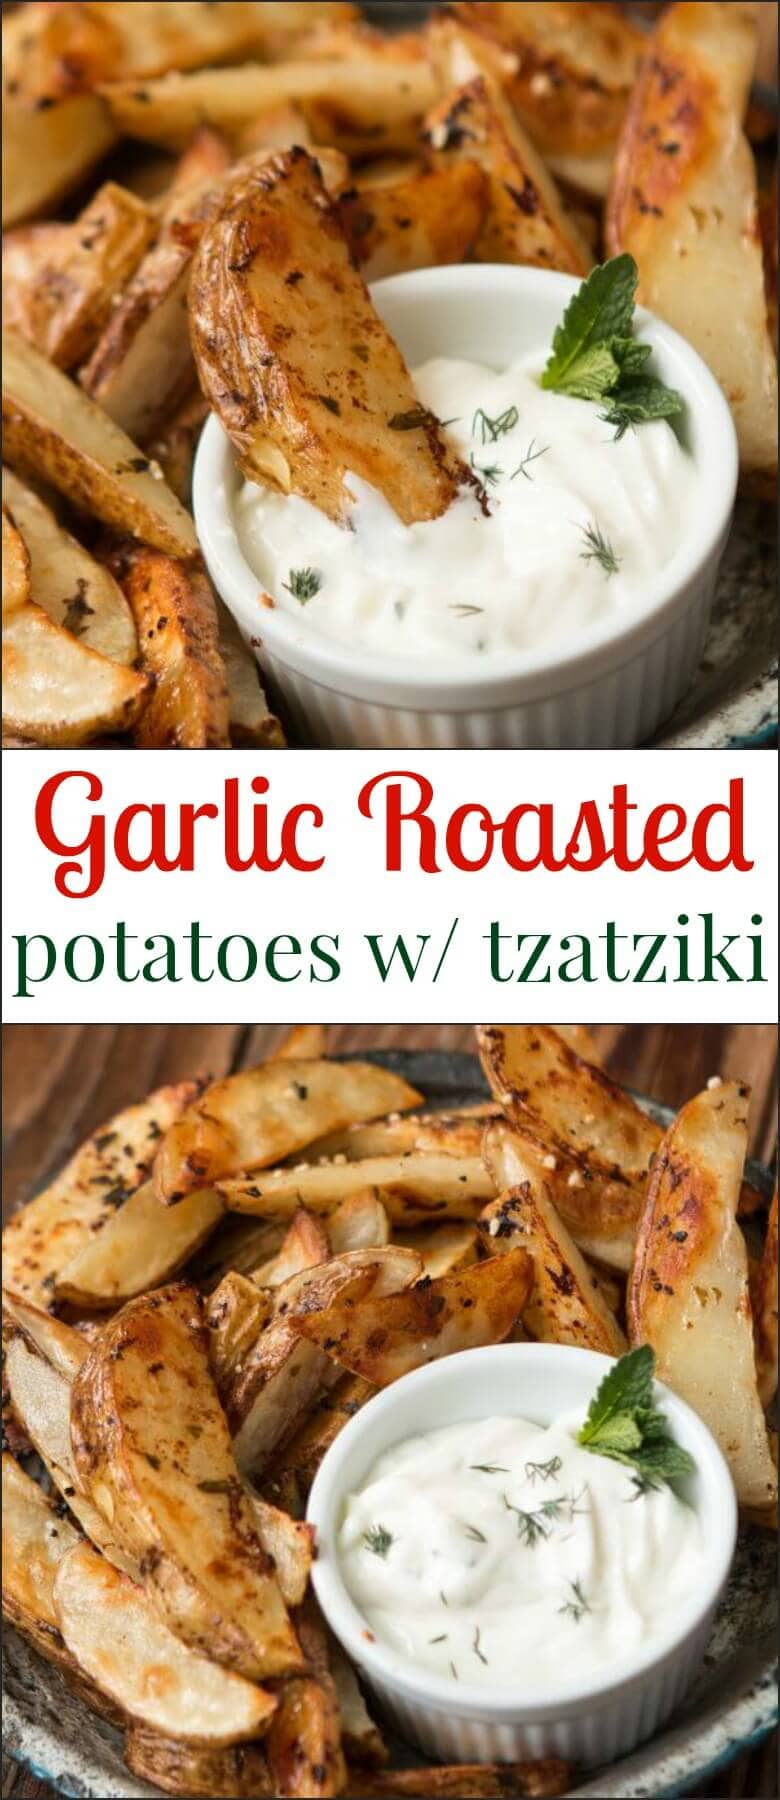 Roasted potatoes dipped in a creamy, garlicky tzatziki sauce. ohsweetbasil.com